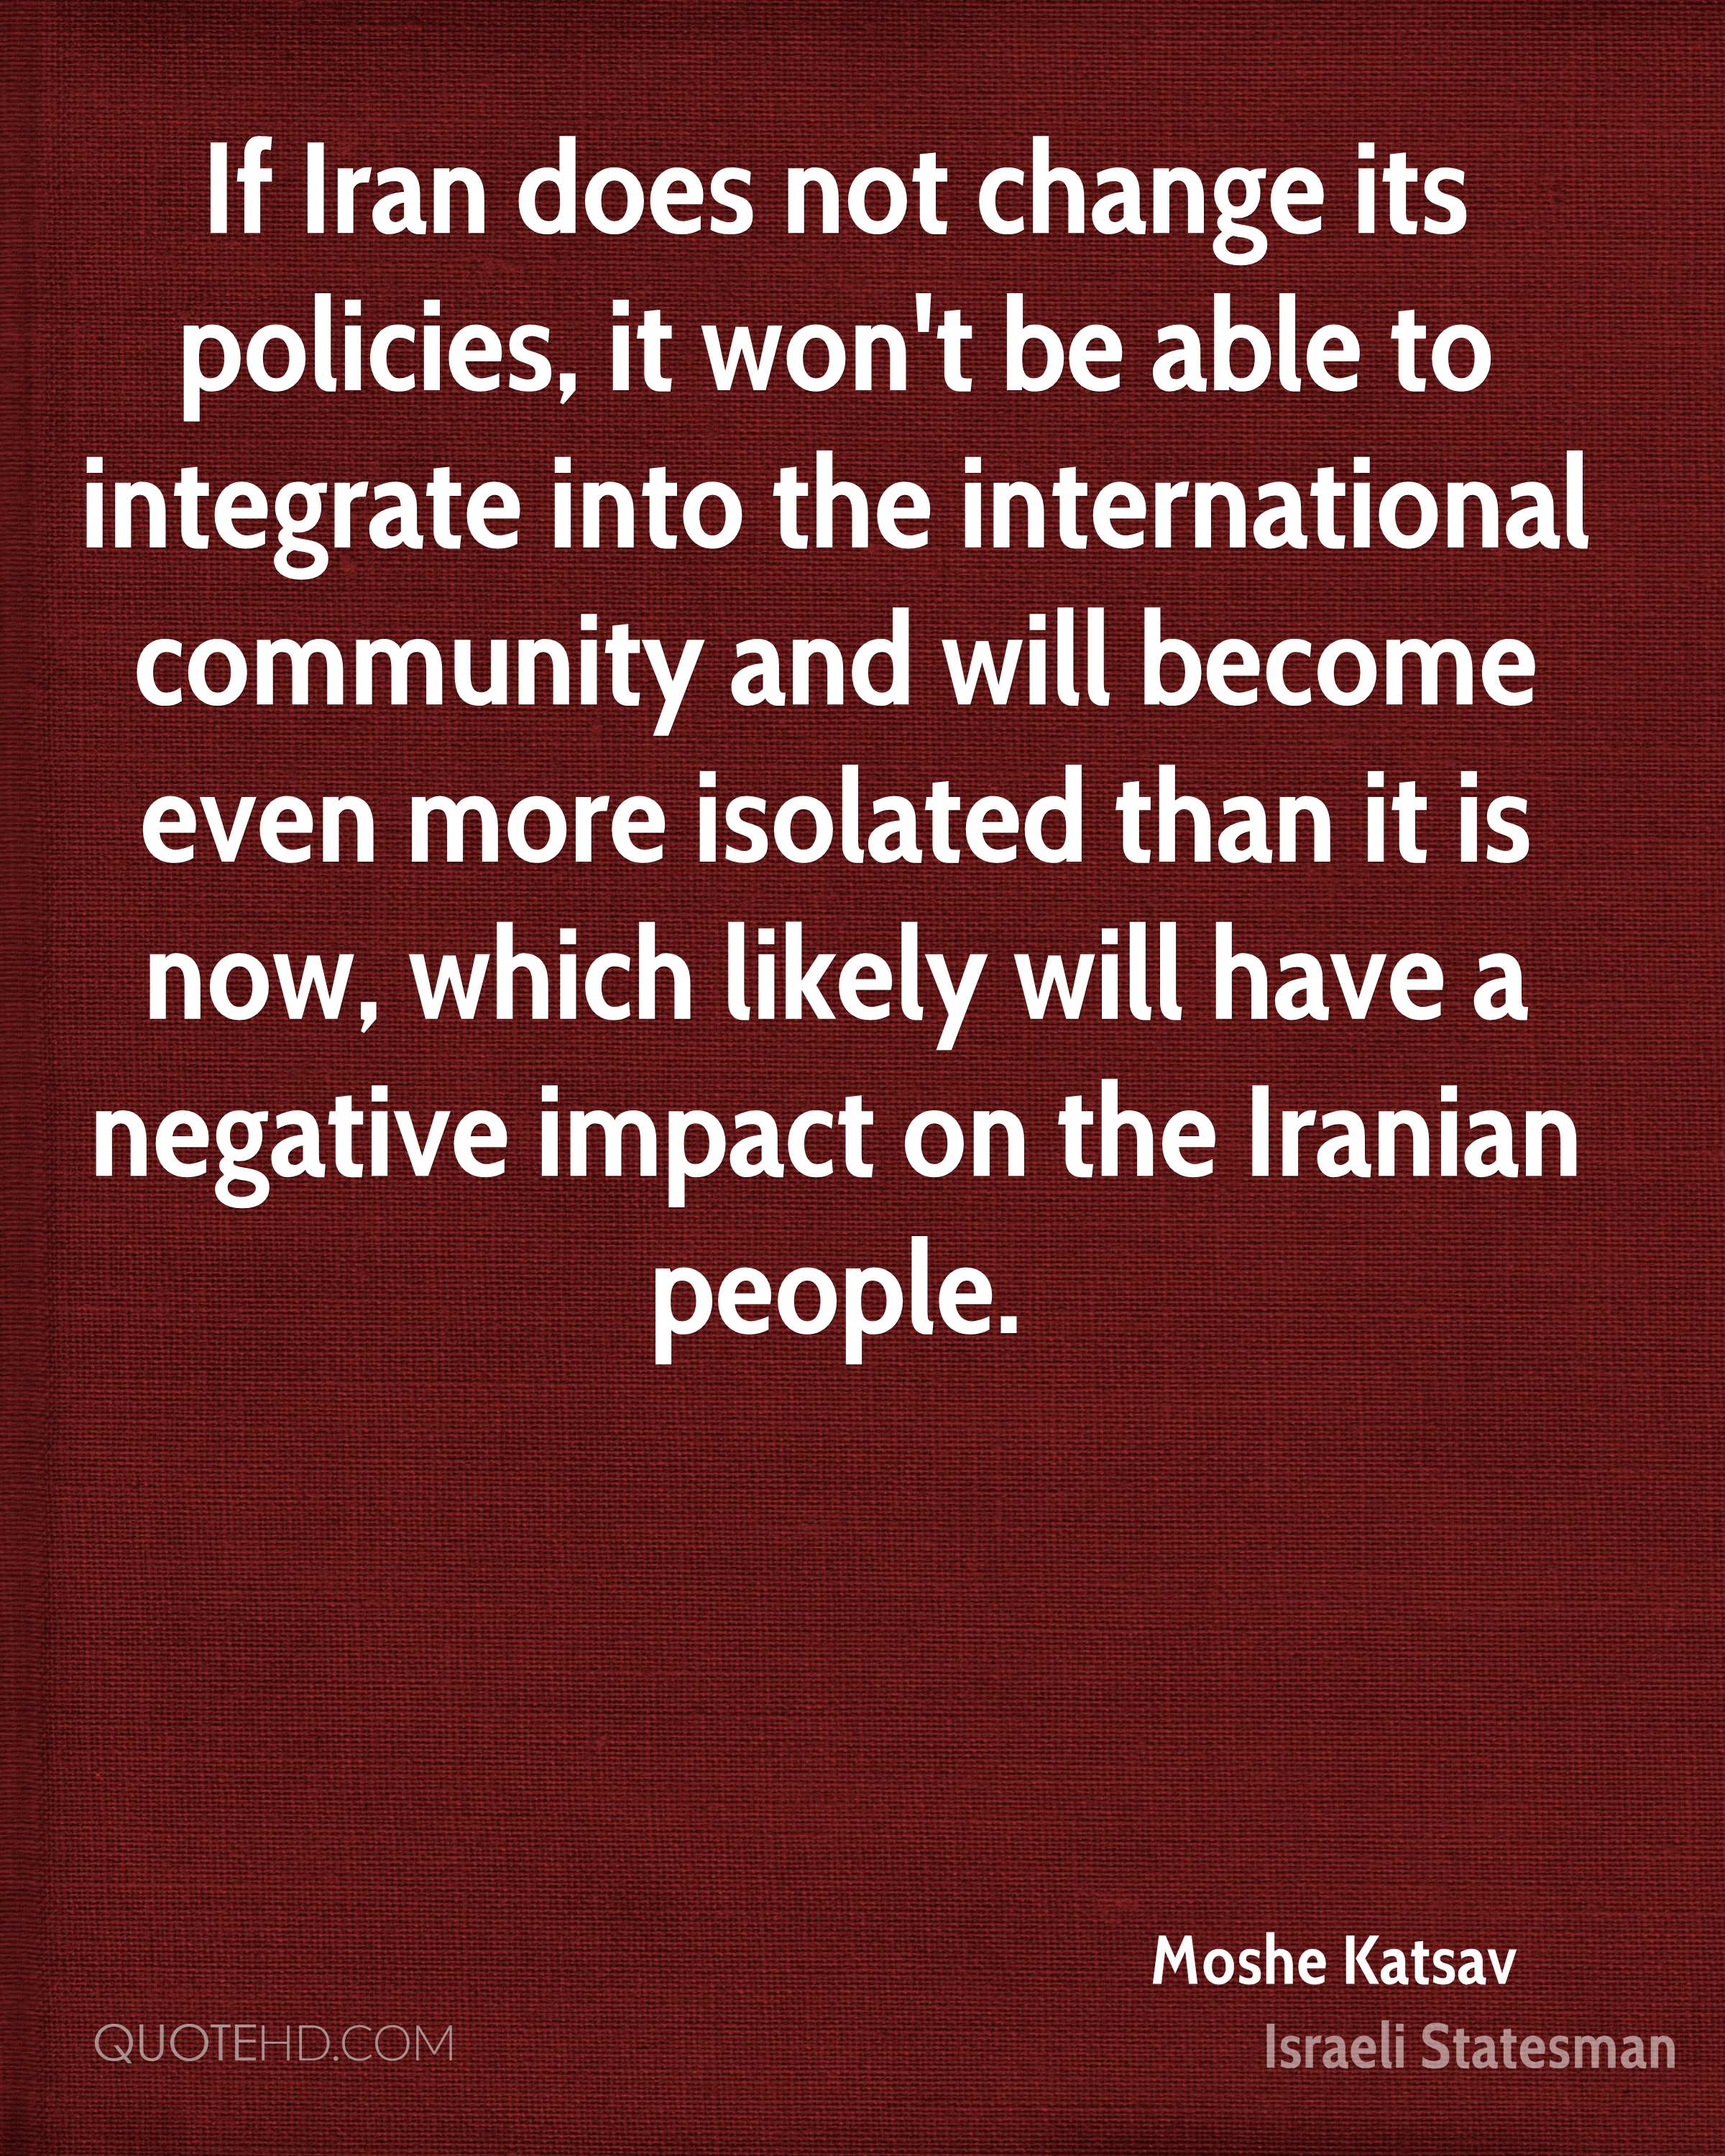 If Iran does not change its policies, it won't be able to integrate into the international community and will become even more isolated than it is now, which likely will have a negative impact on the Iranian people.